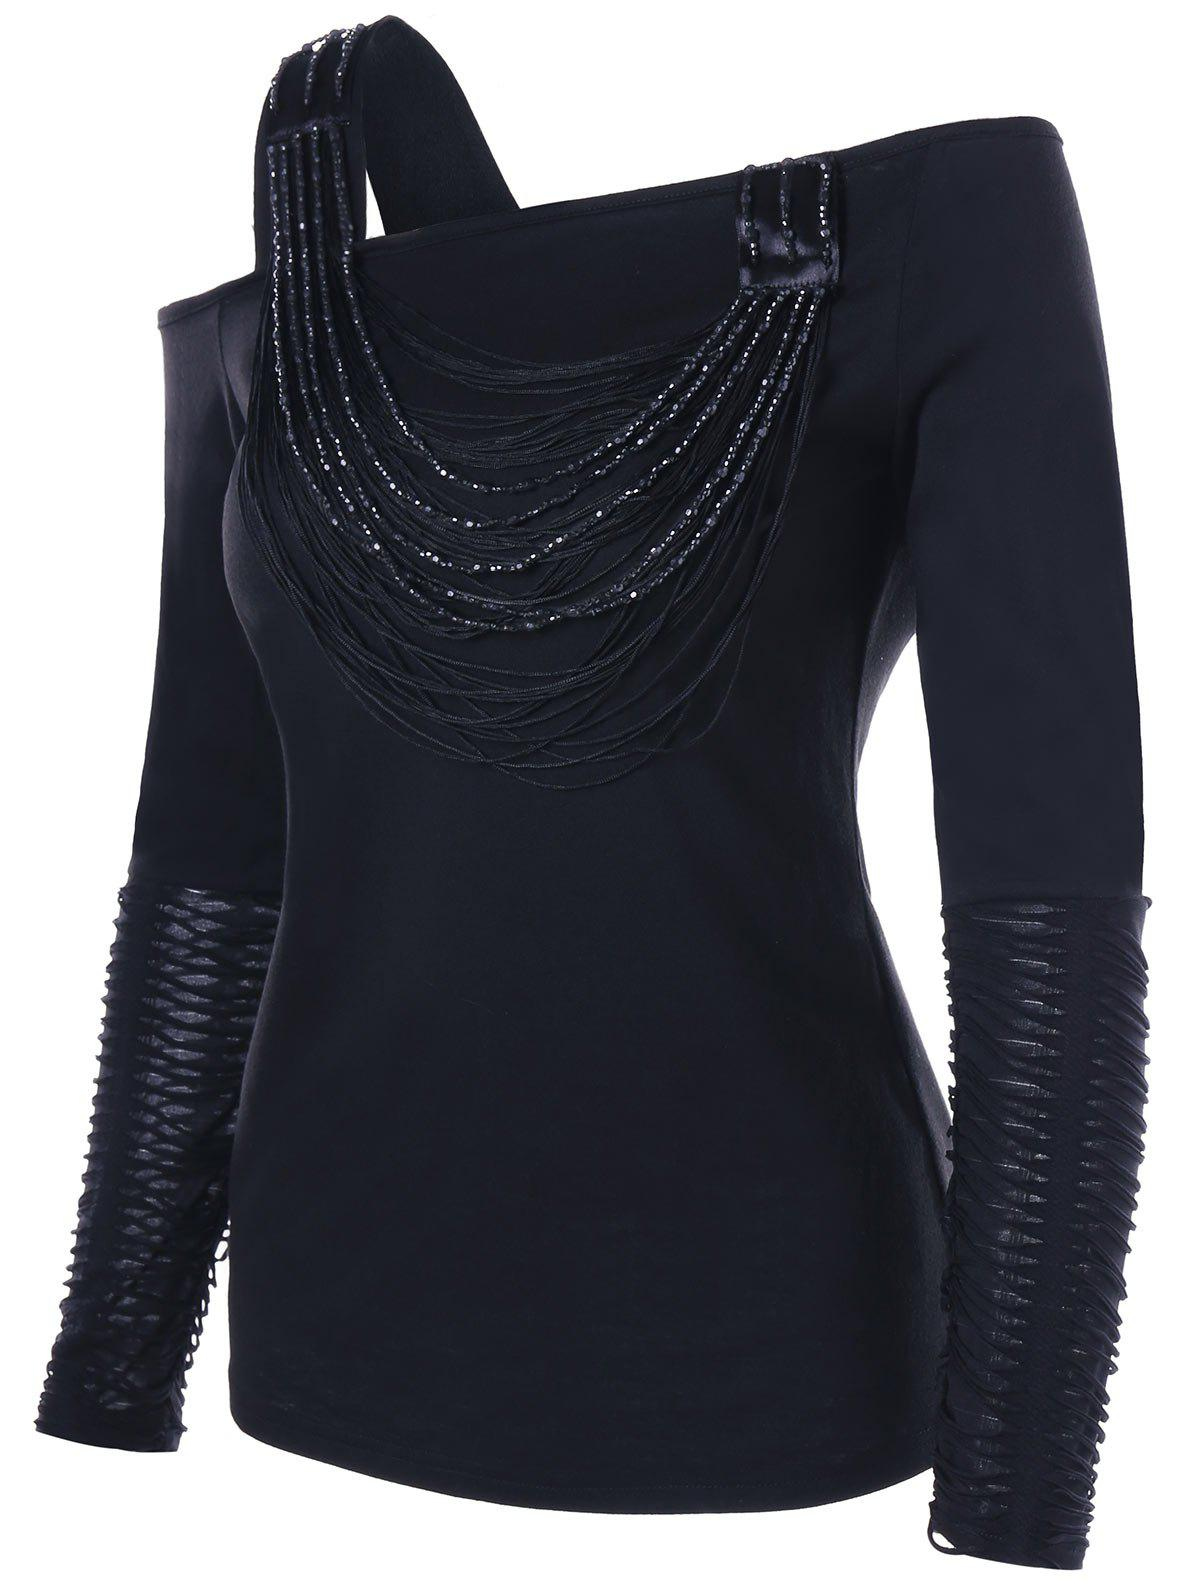 Distressed Long Sleeve Beaded One Shoulder TopWOMEN<br><br>Size: XL; Color: BLACK; Material: Polyester,Spandex; Shirt Length: Regular; Sleeve Length: Full; Collar: One-Shoulder; Style: Fashion; Embellishment: Beading; Pattern Type: Solid; Season: Fall,Spring; Weight: 0.2650kg; Package Contents: 1 x Top;